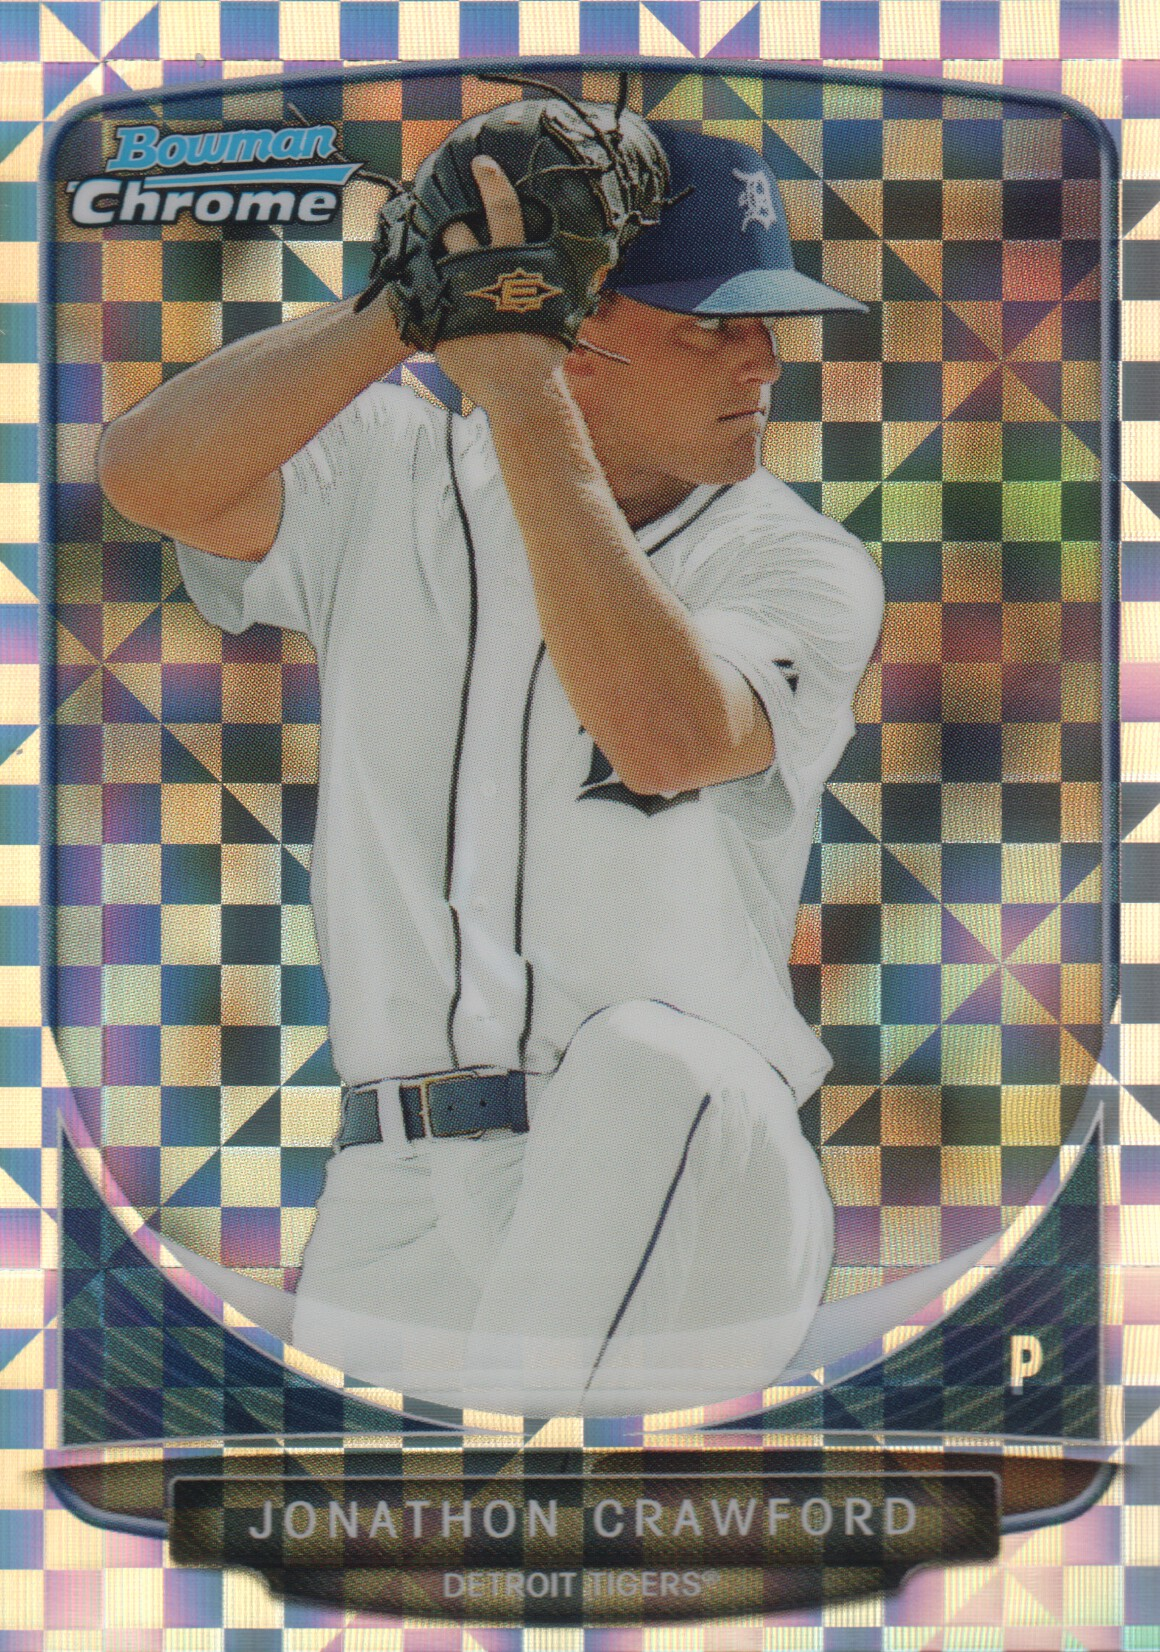 2013 Bowman Chrome Mini X-fractors #8 Jonathon Crawford